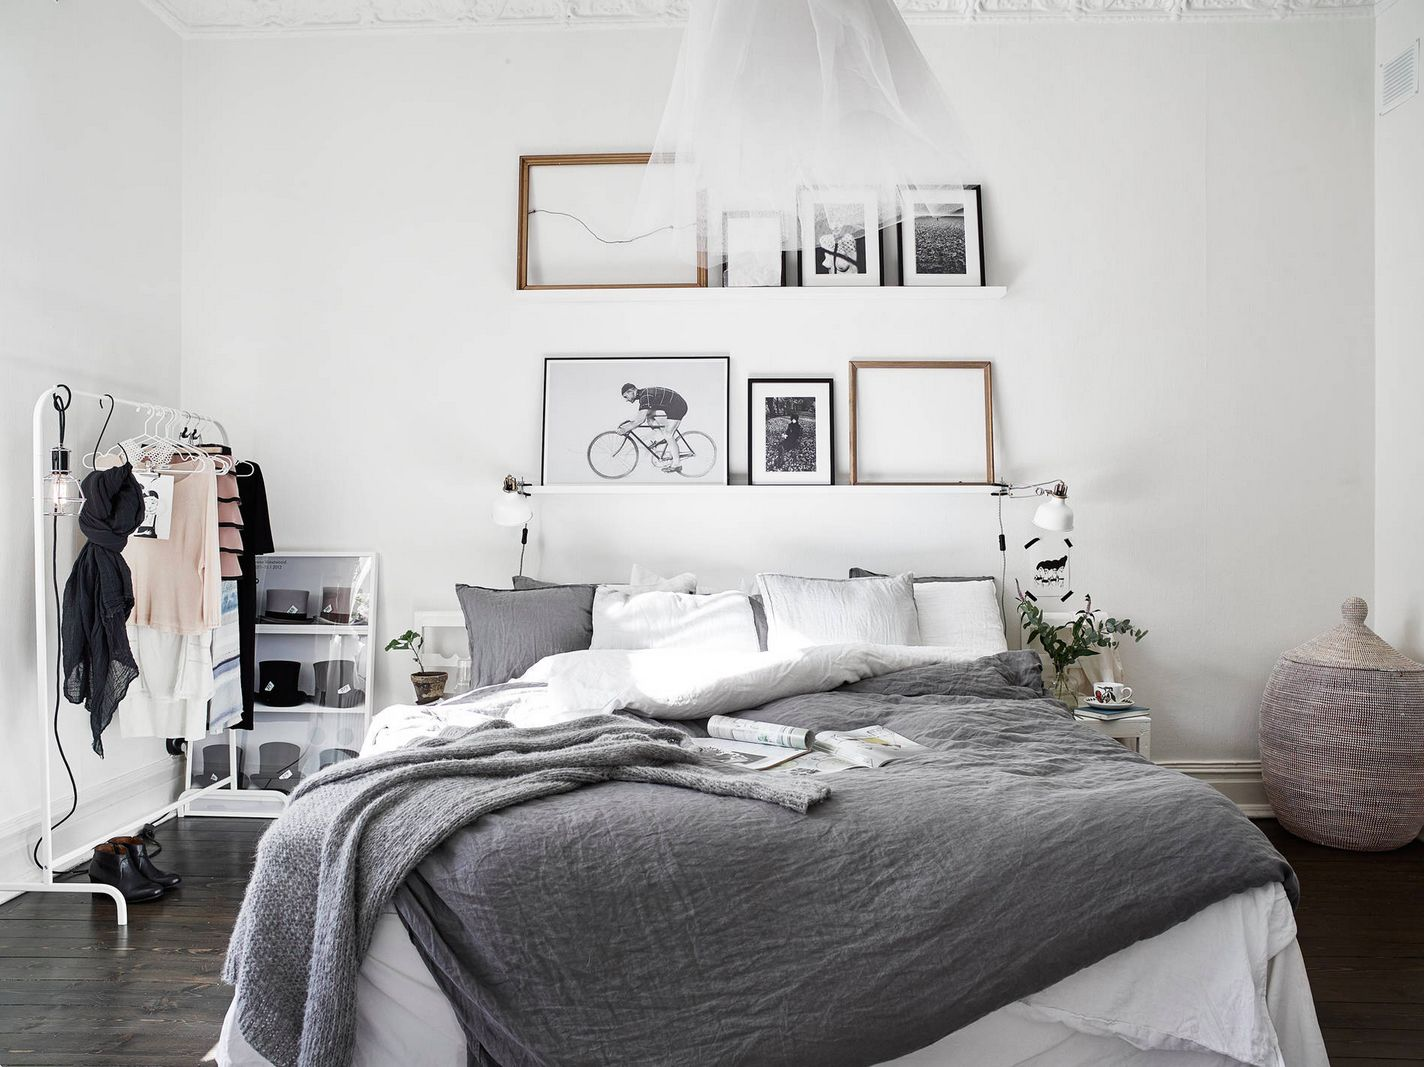 Bedroom Design Beautiful Bedroom Inspirations How To Make A Tumblr Room Gray Tumblr Bedroom Decor Pinteres Bedroom Interior Bedroom Inspirations Bedroom Design